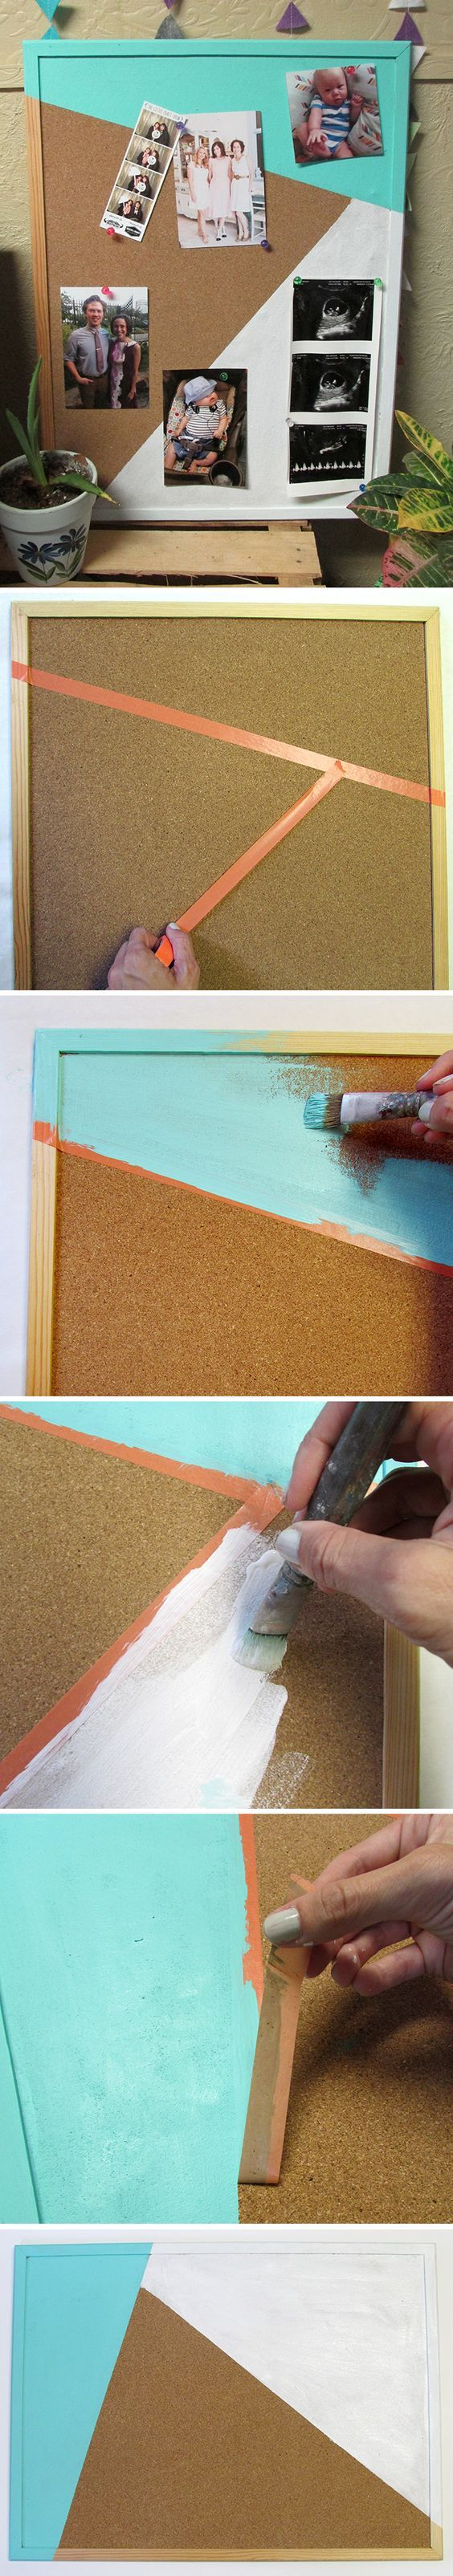 best 25 painting corkboard ideas on pinterest. Black Bedroom Furniture Sets. Home Design Ideas